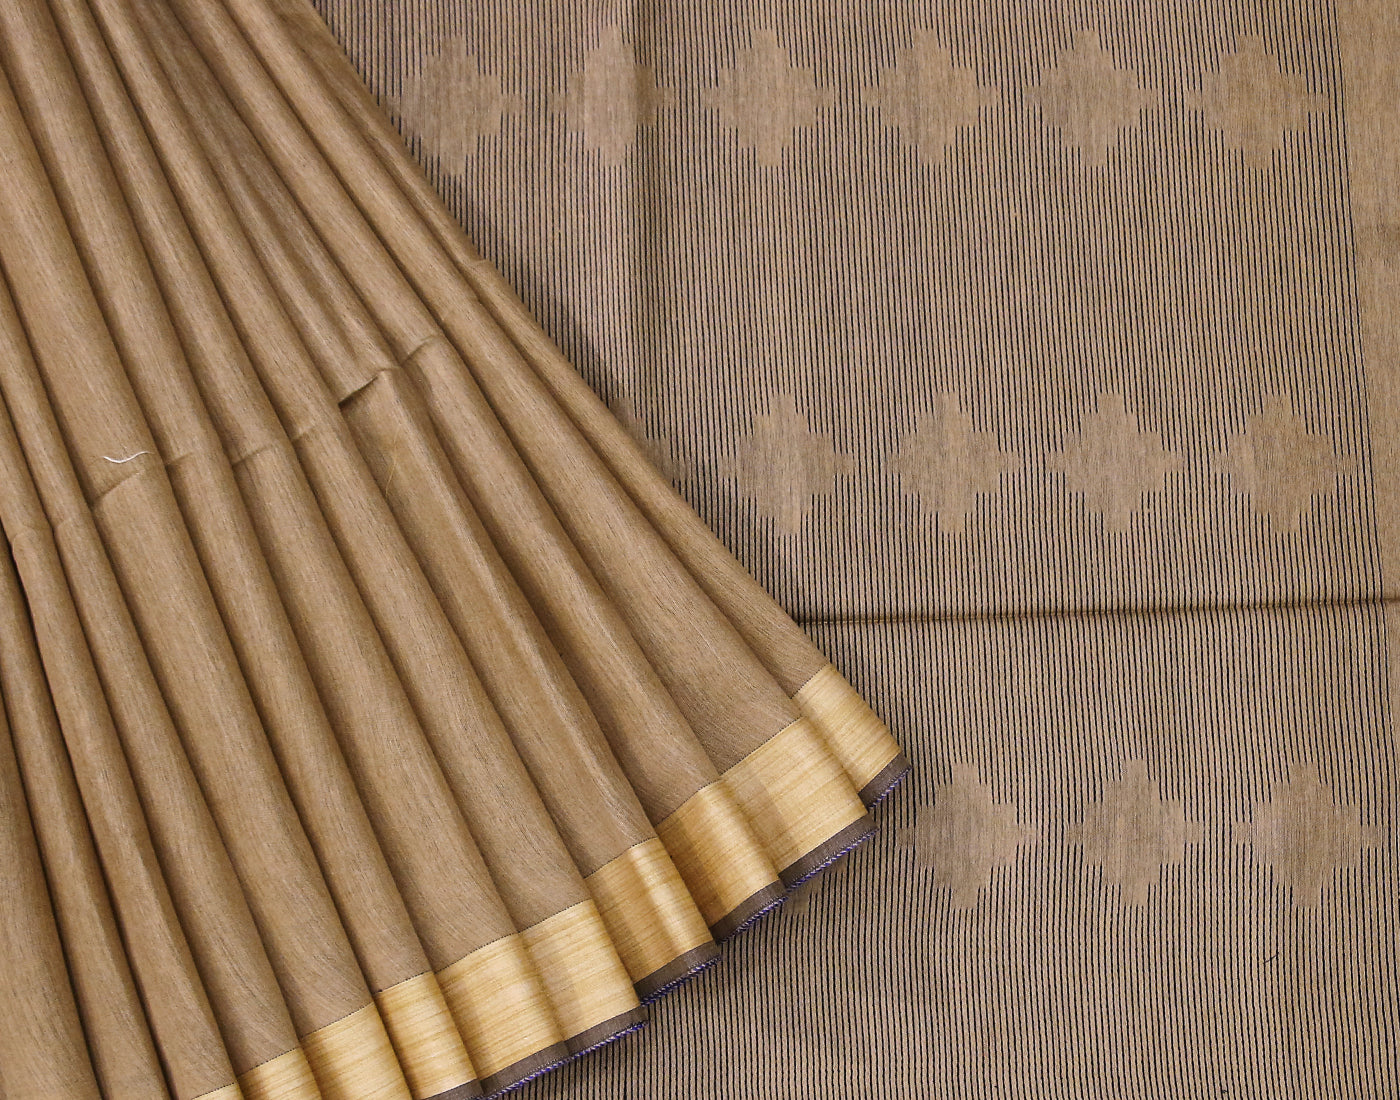 Handloom Kota Jacquard Saree With Fringes